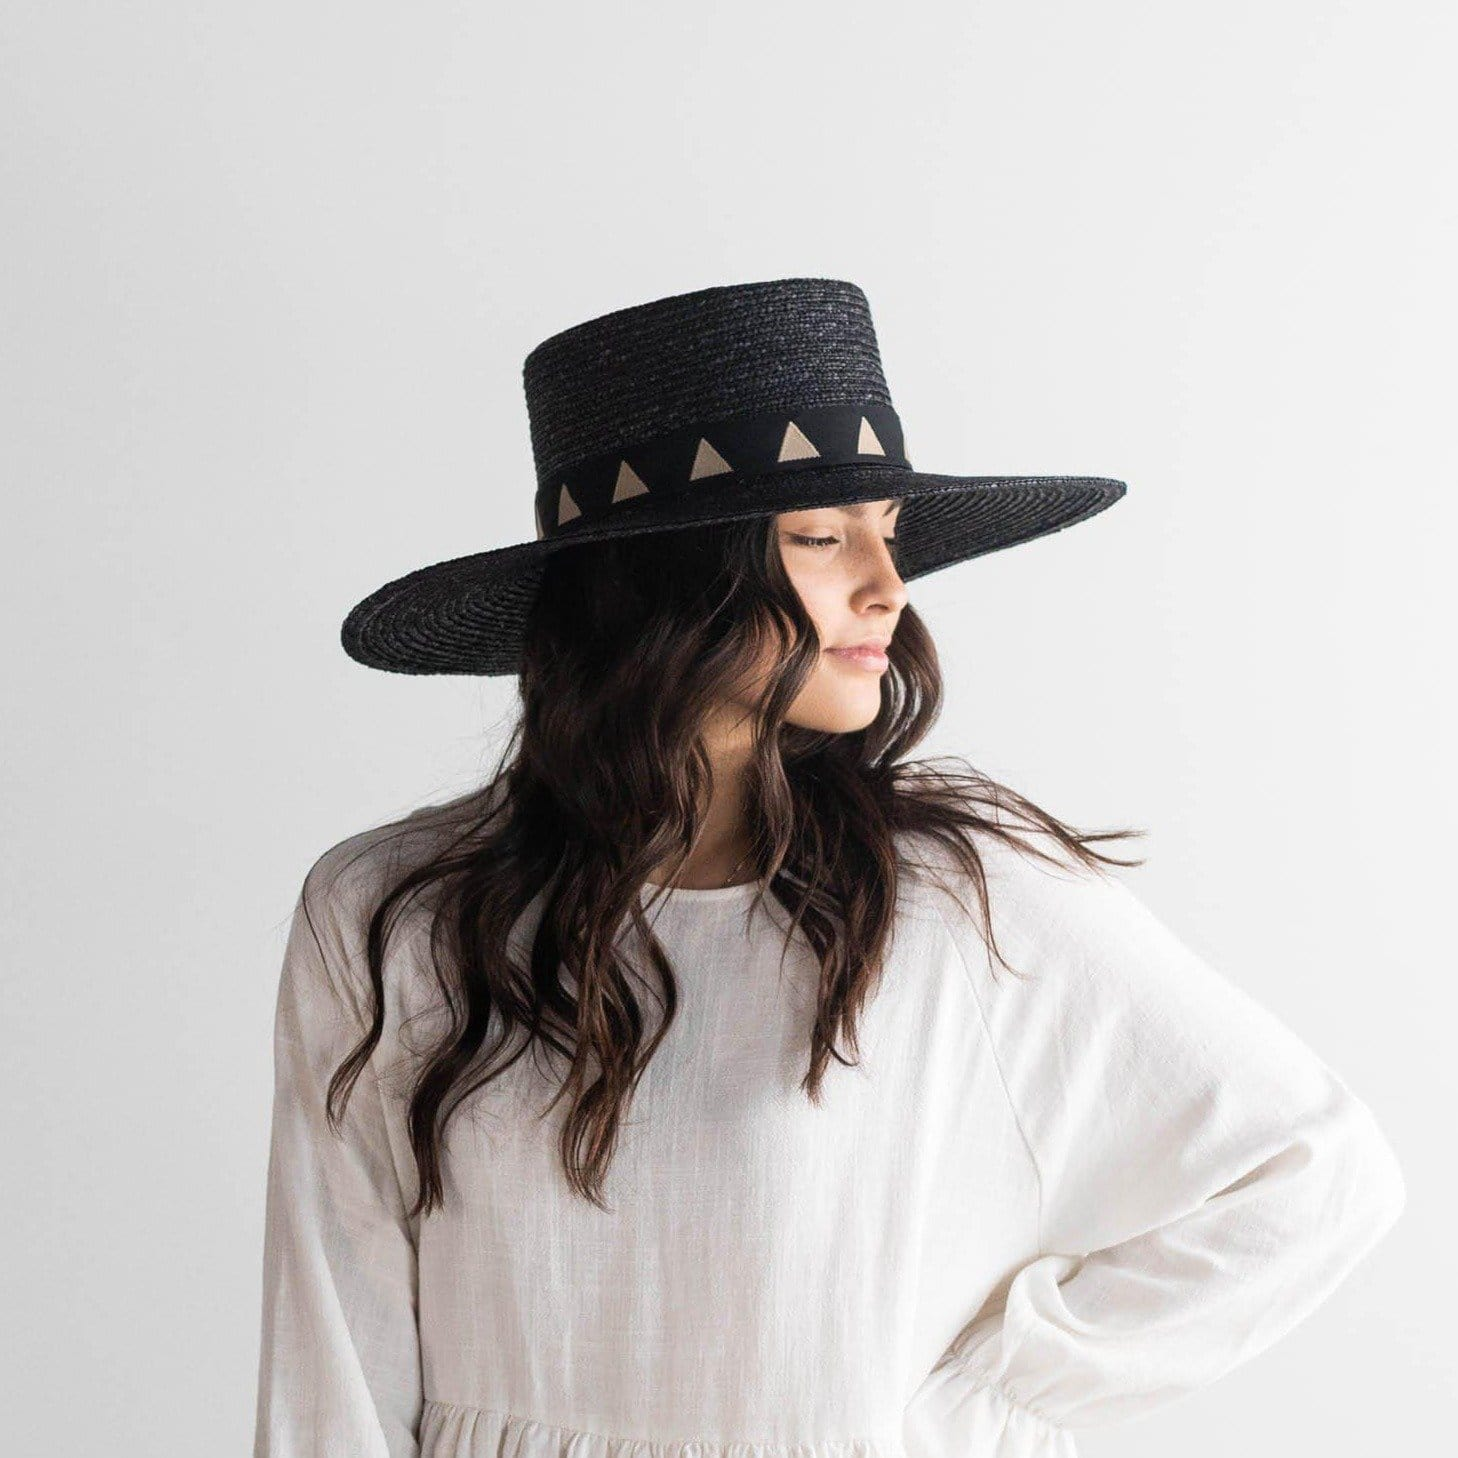 GIGI PIP Hats for Women- Corey Medium - Black-Straw Hats